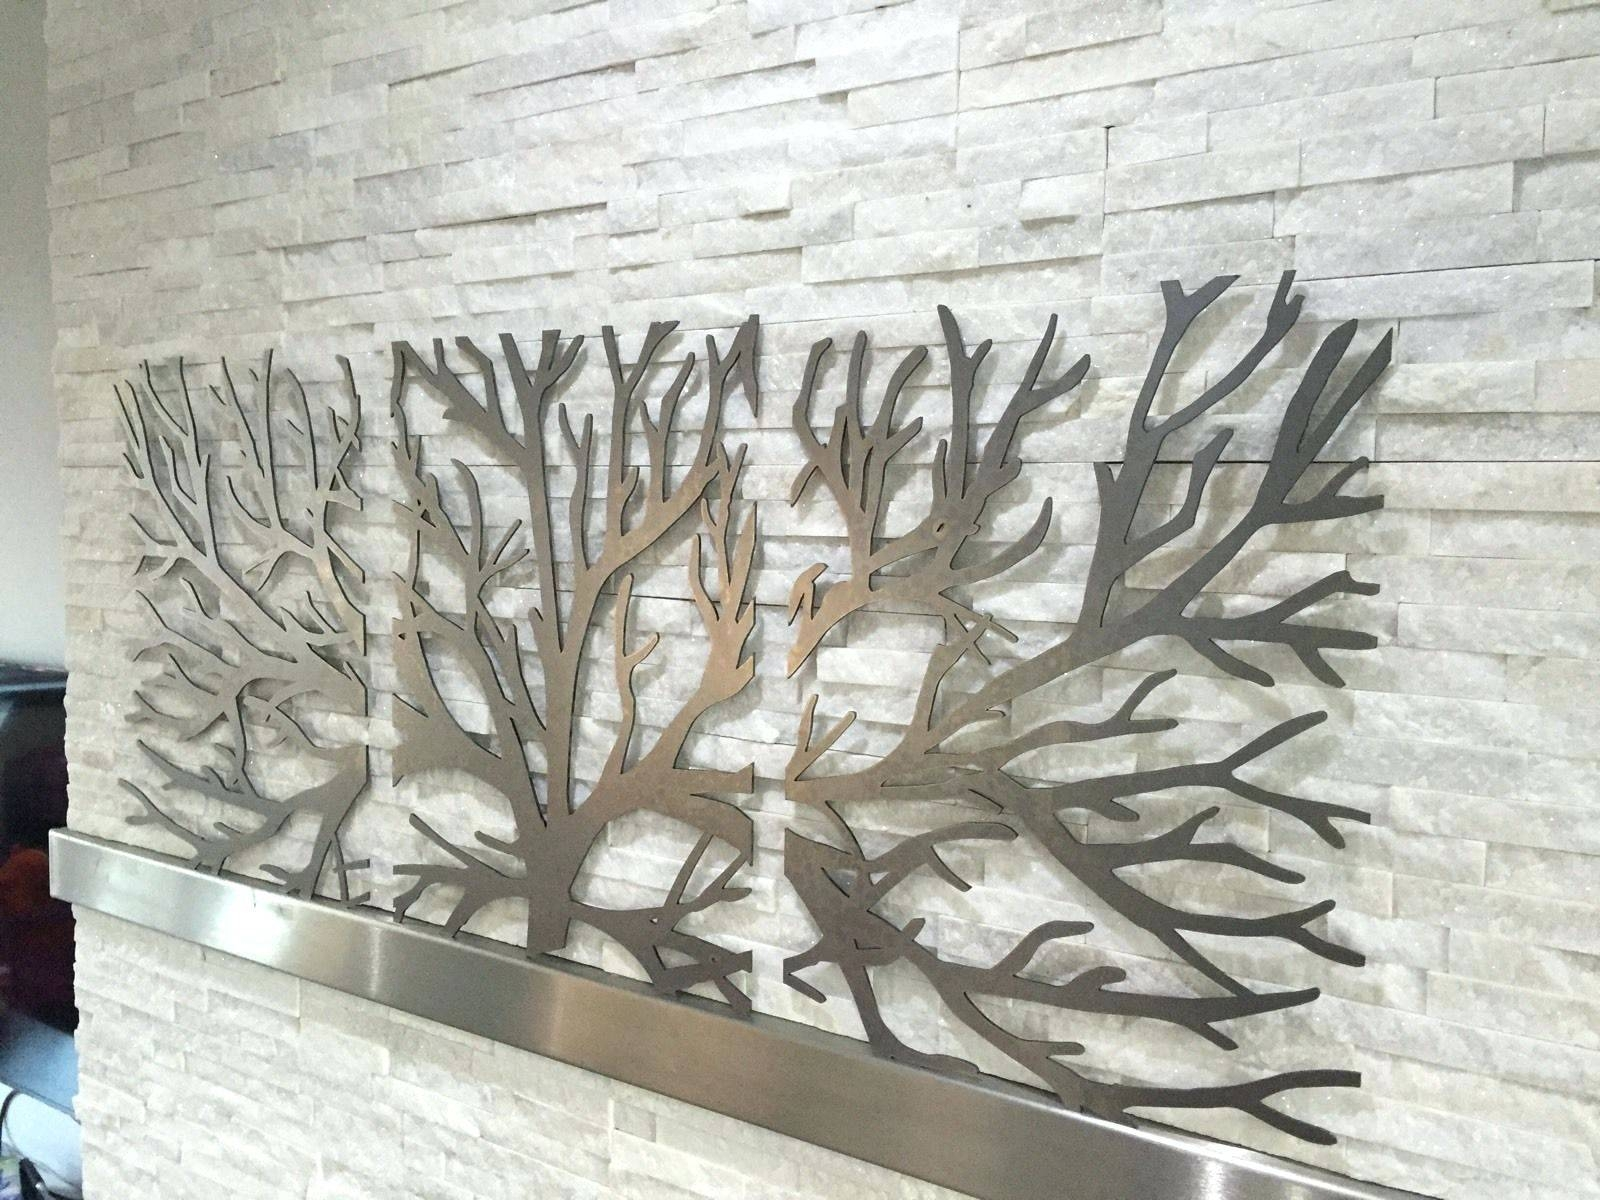 Wall Arts ~ 3D Wall Art 3D Metal Decor Metal Wall Art Decor 3D With Regard To 2018 3D Metal Wall Art Sculptures (View 18 of 20)